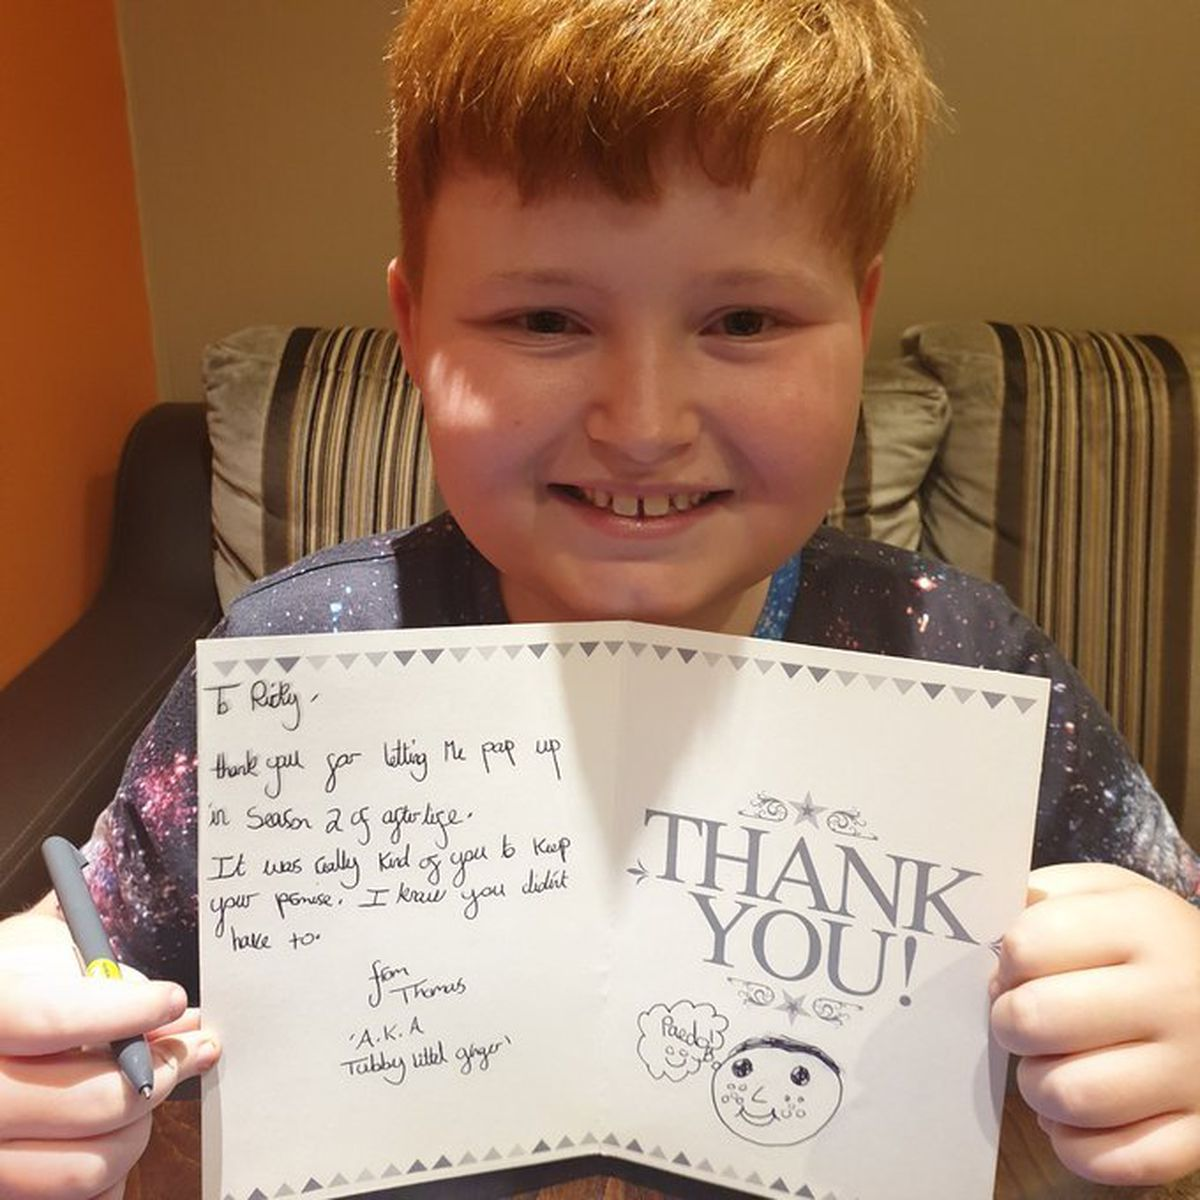 Thomas with his card, before sending it to Ricky Gervais - photo by Debbie Bastable